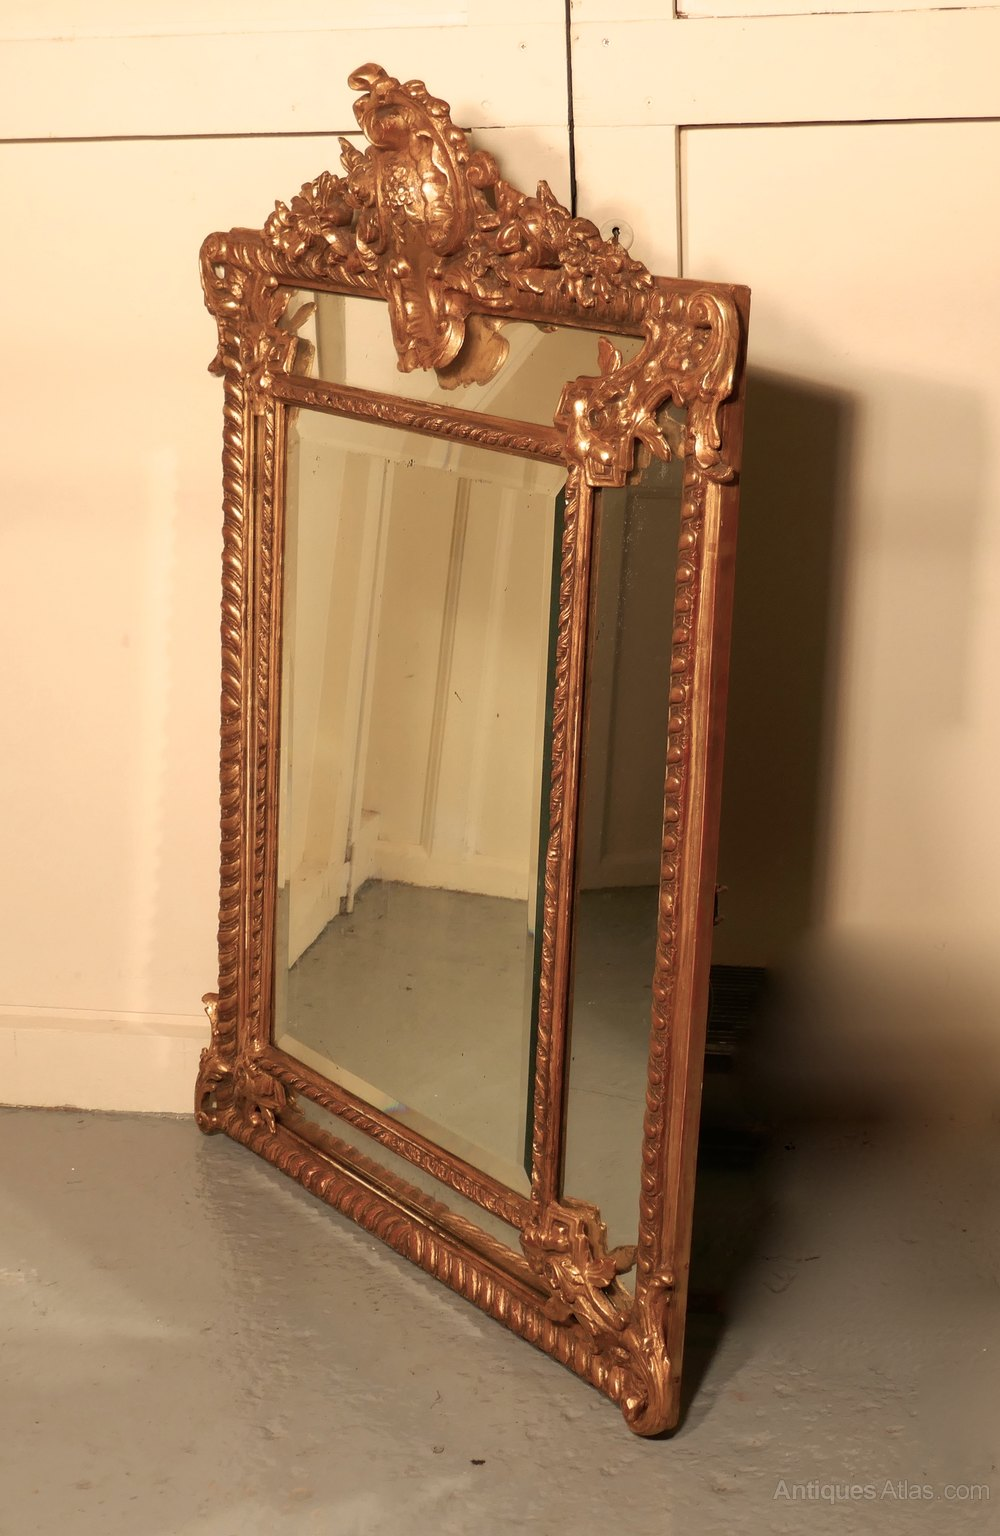 Antiques atlas a stunning napoleon iii french cushion mirror for Antique french mirror